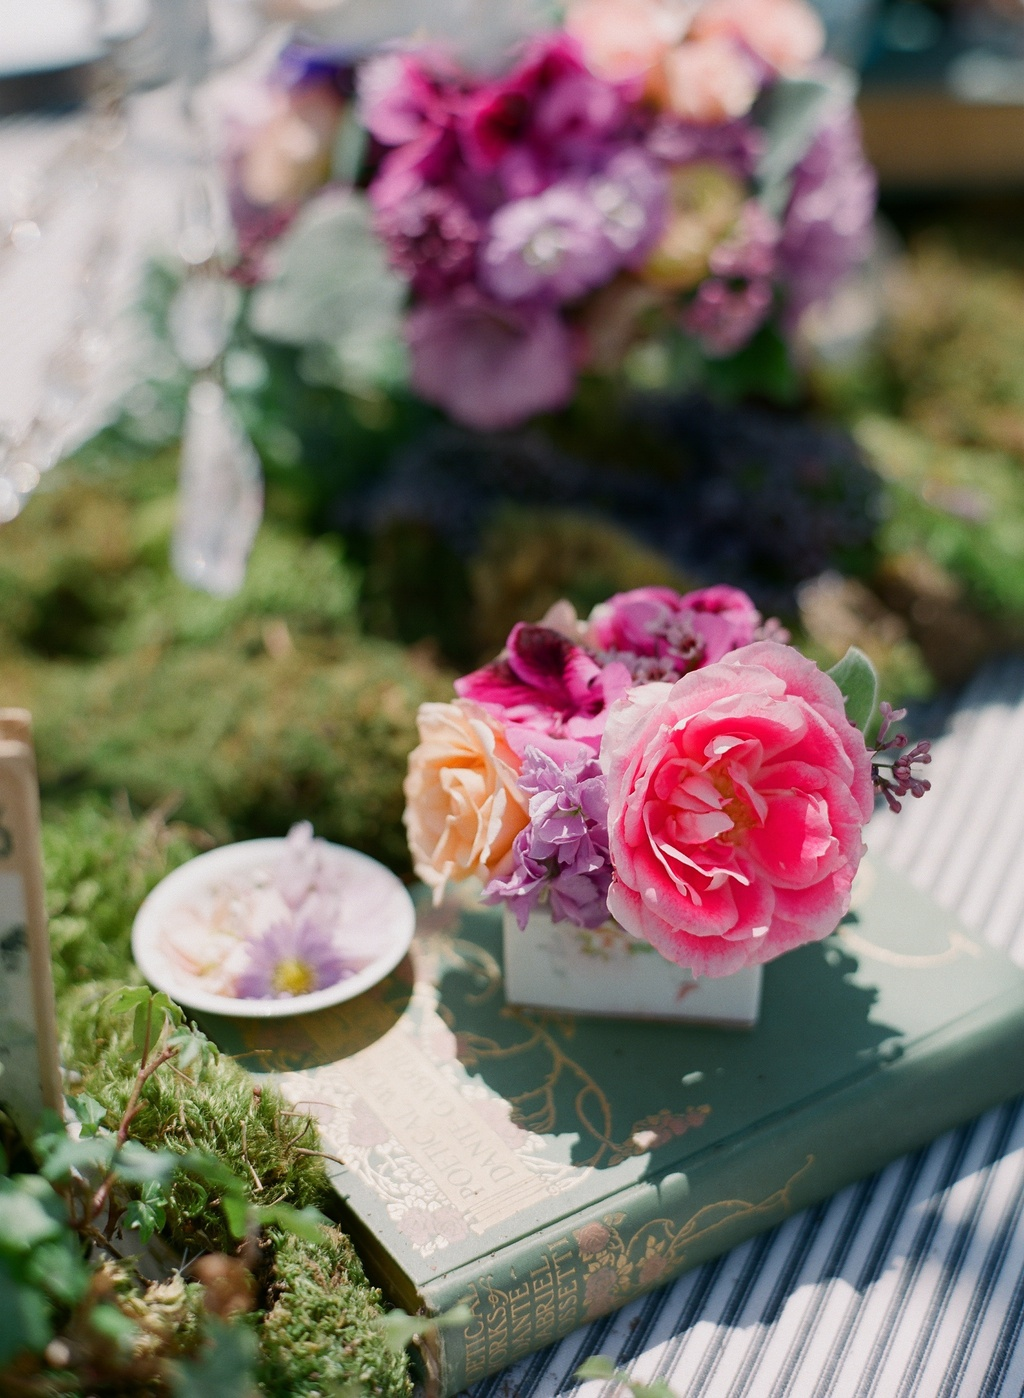 Styled-wedding-beaux-arts-tea-time-monique-lhuillier-santa-barbara-chic-flowers-pink-purple-moss-276.full